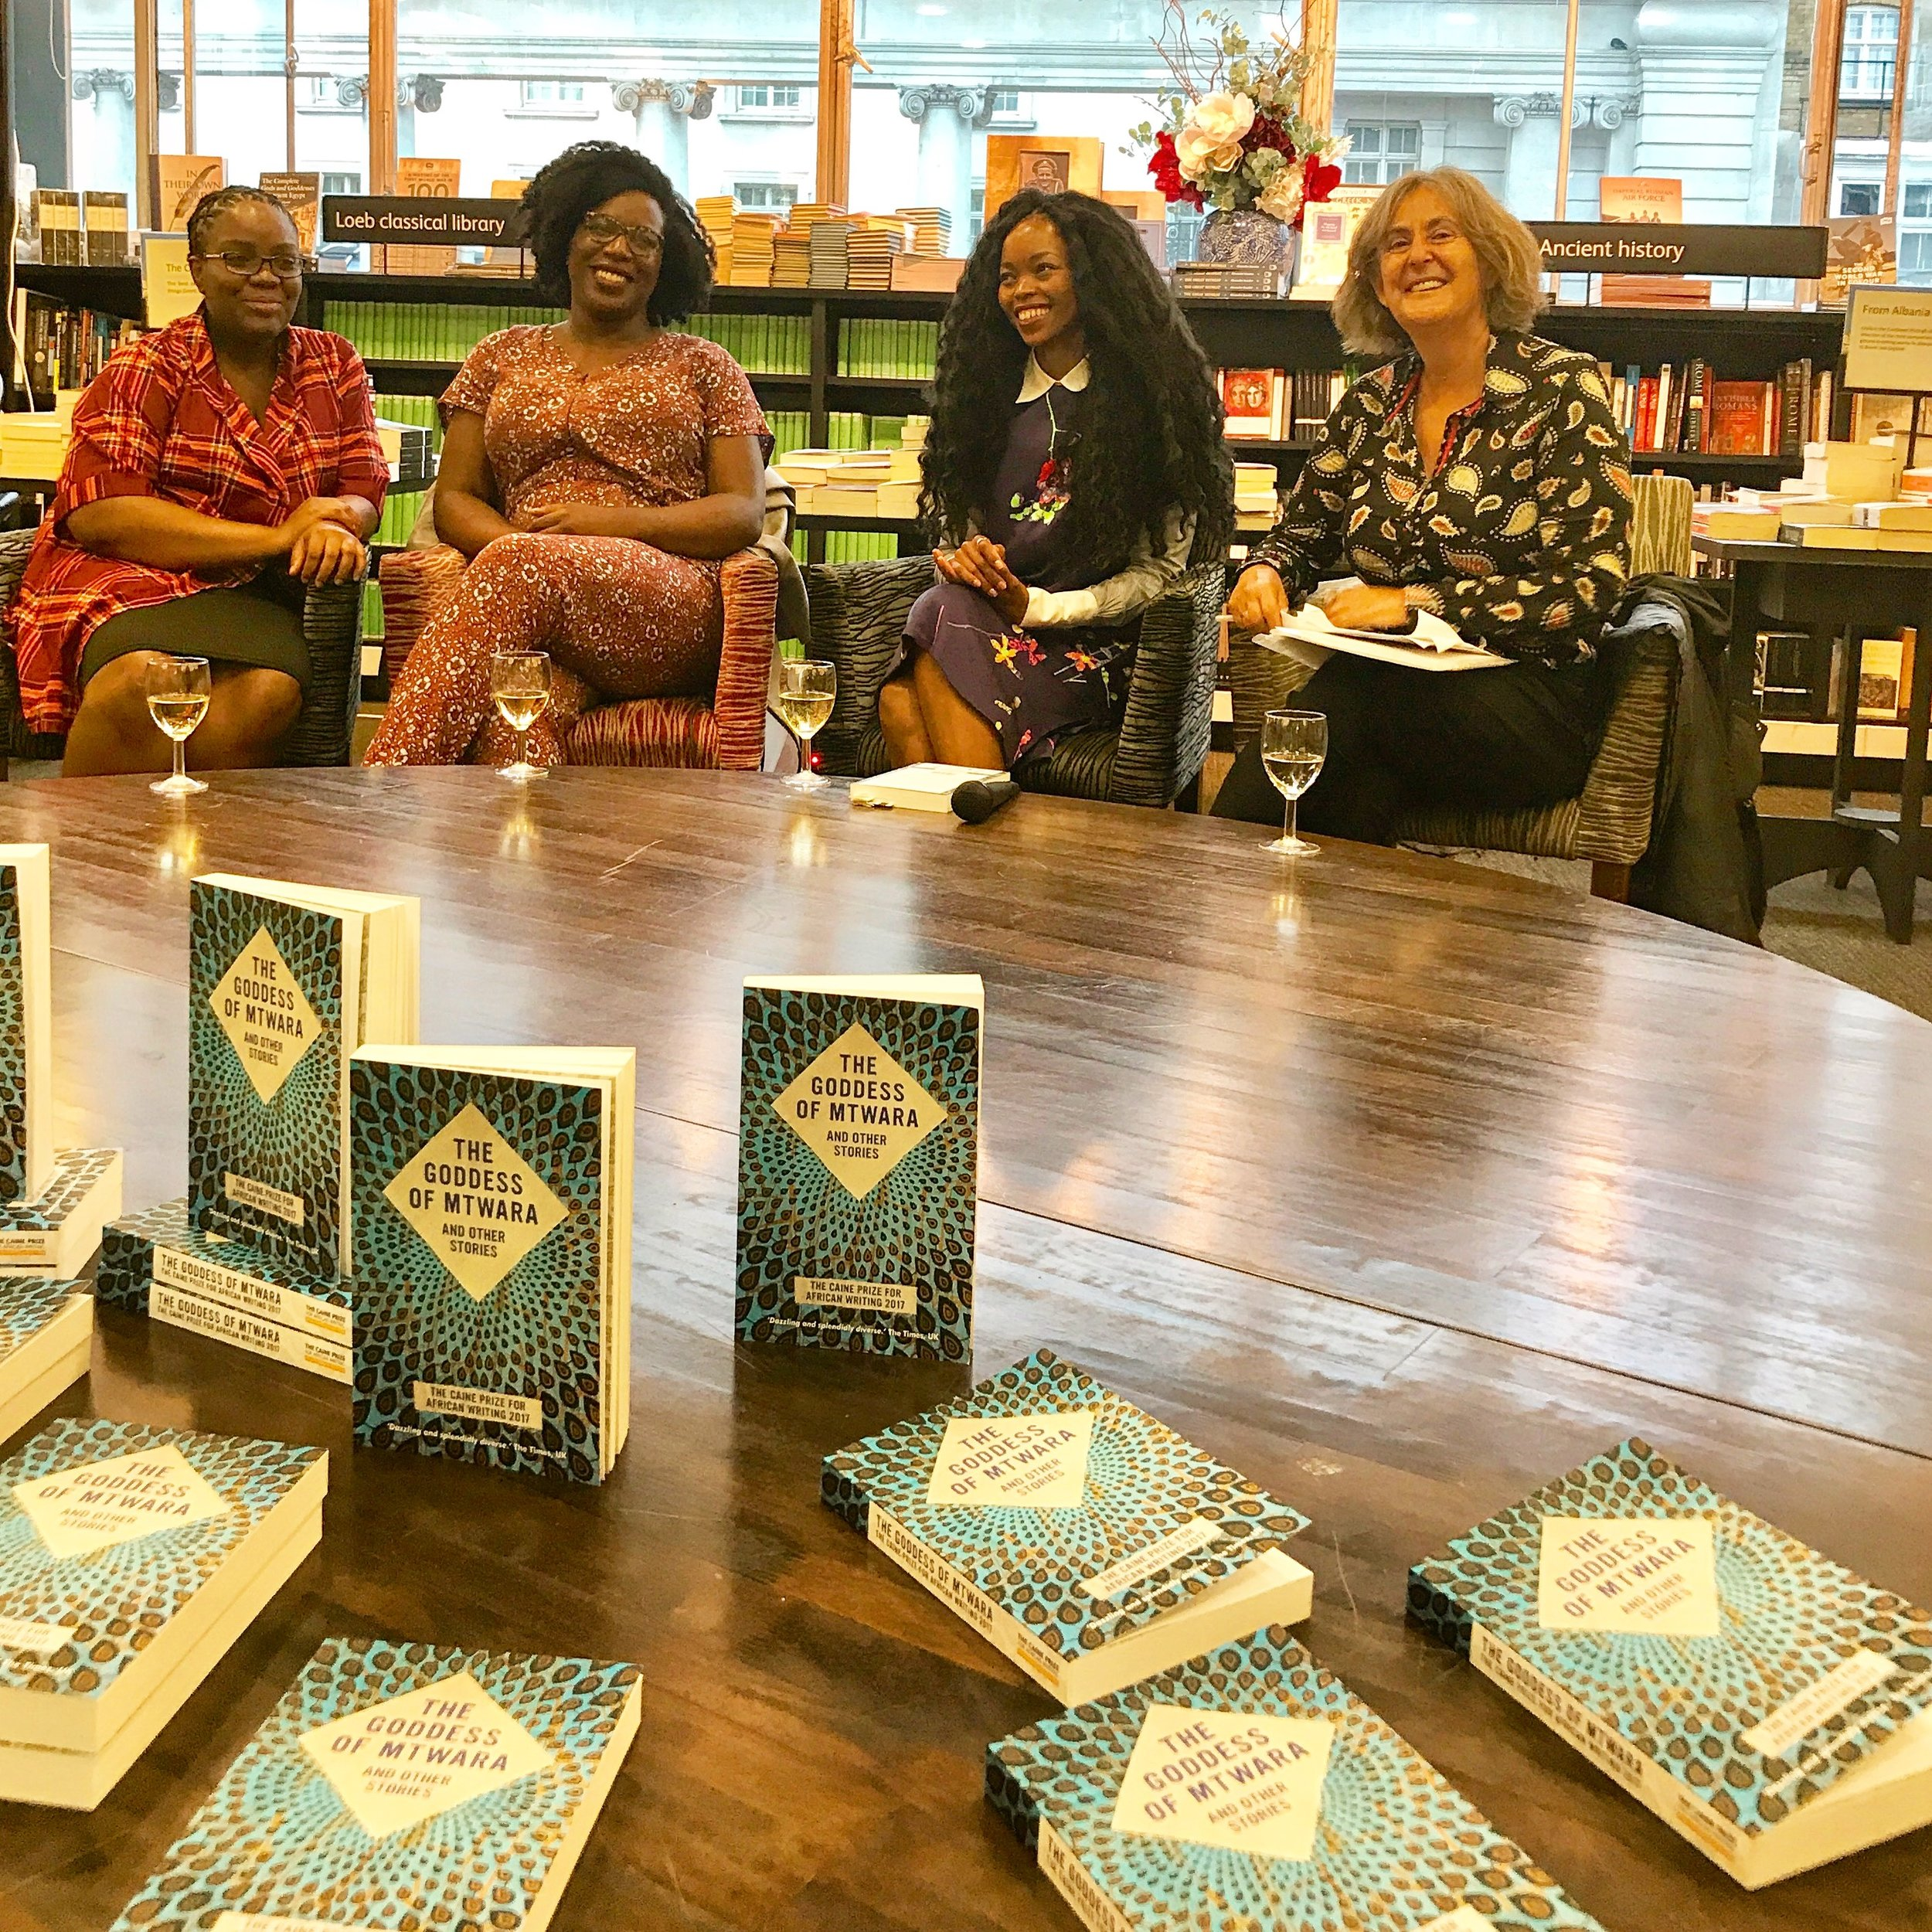 Waterstones Piccadilly Panel moderated by Gillian Slovo.